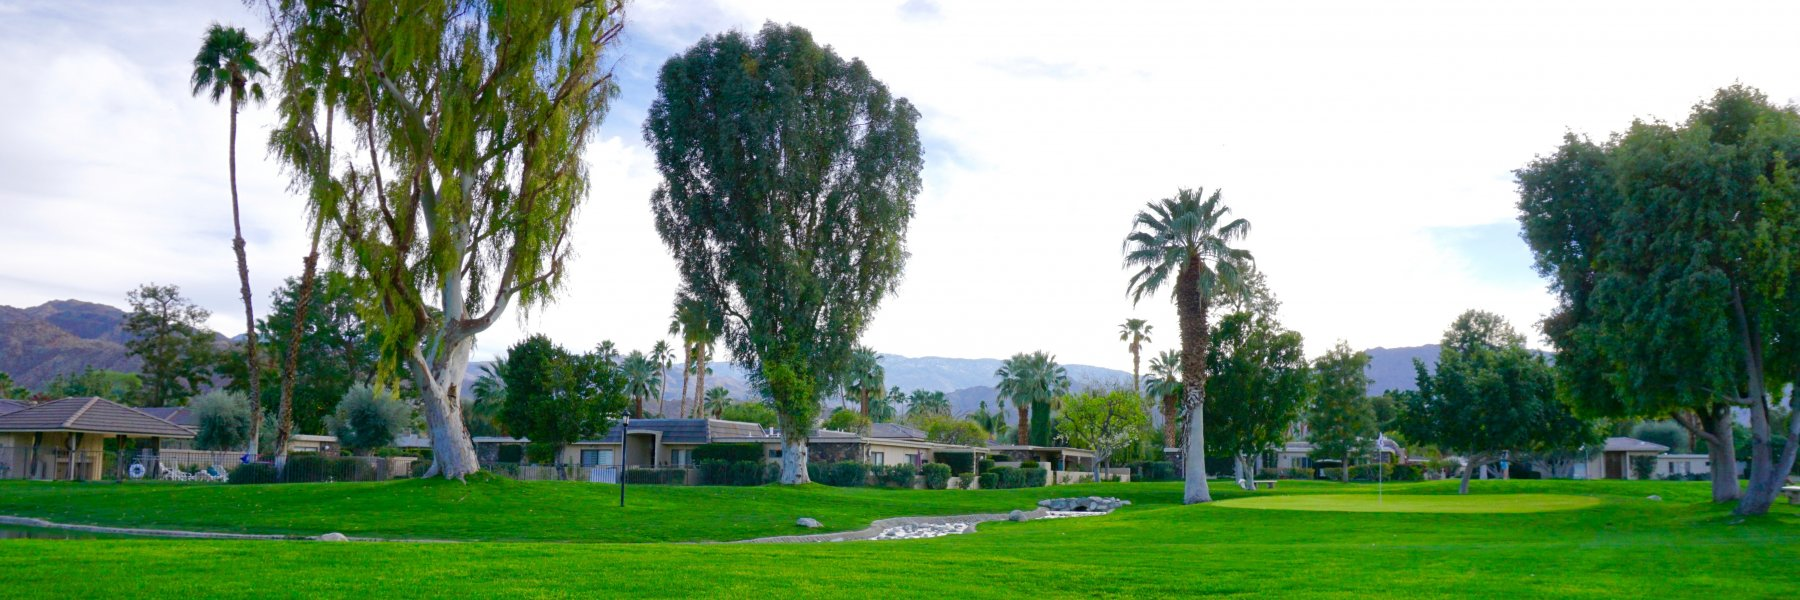 La Rocca is a community of homes in Indian Wells, California